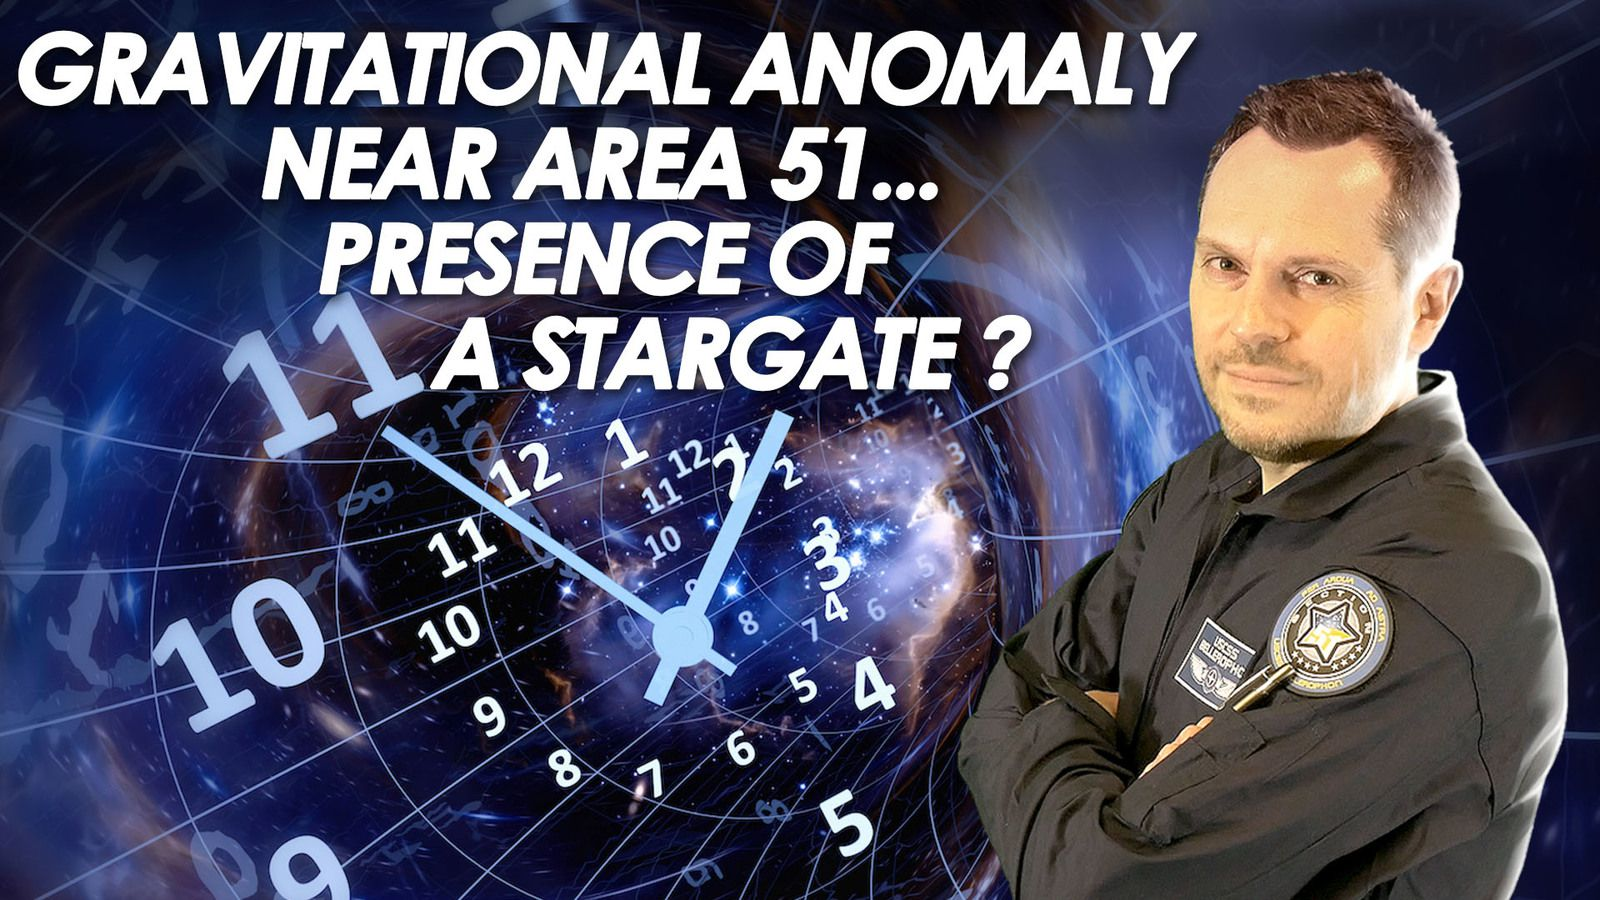 👽 Gravitational Anomaly Spotted Near Area 51 - The Presence Of a Stargate is Suspected